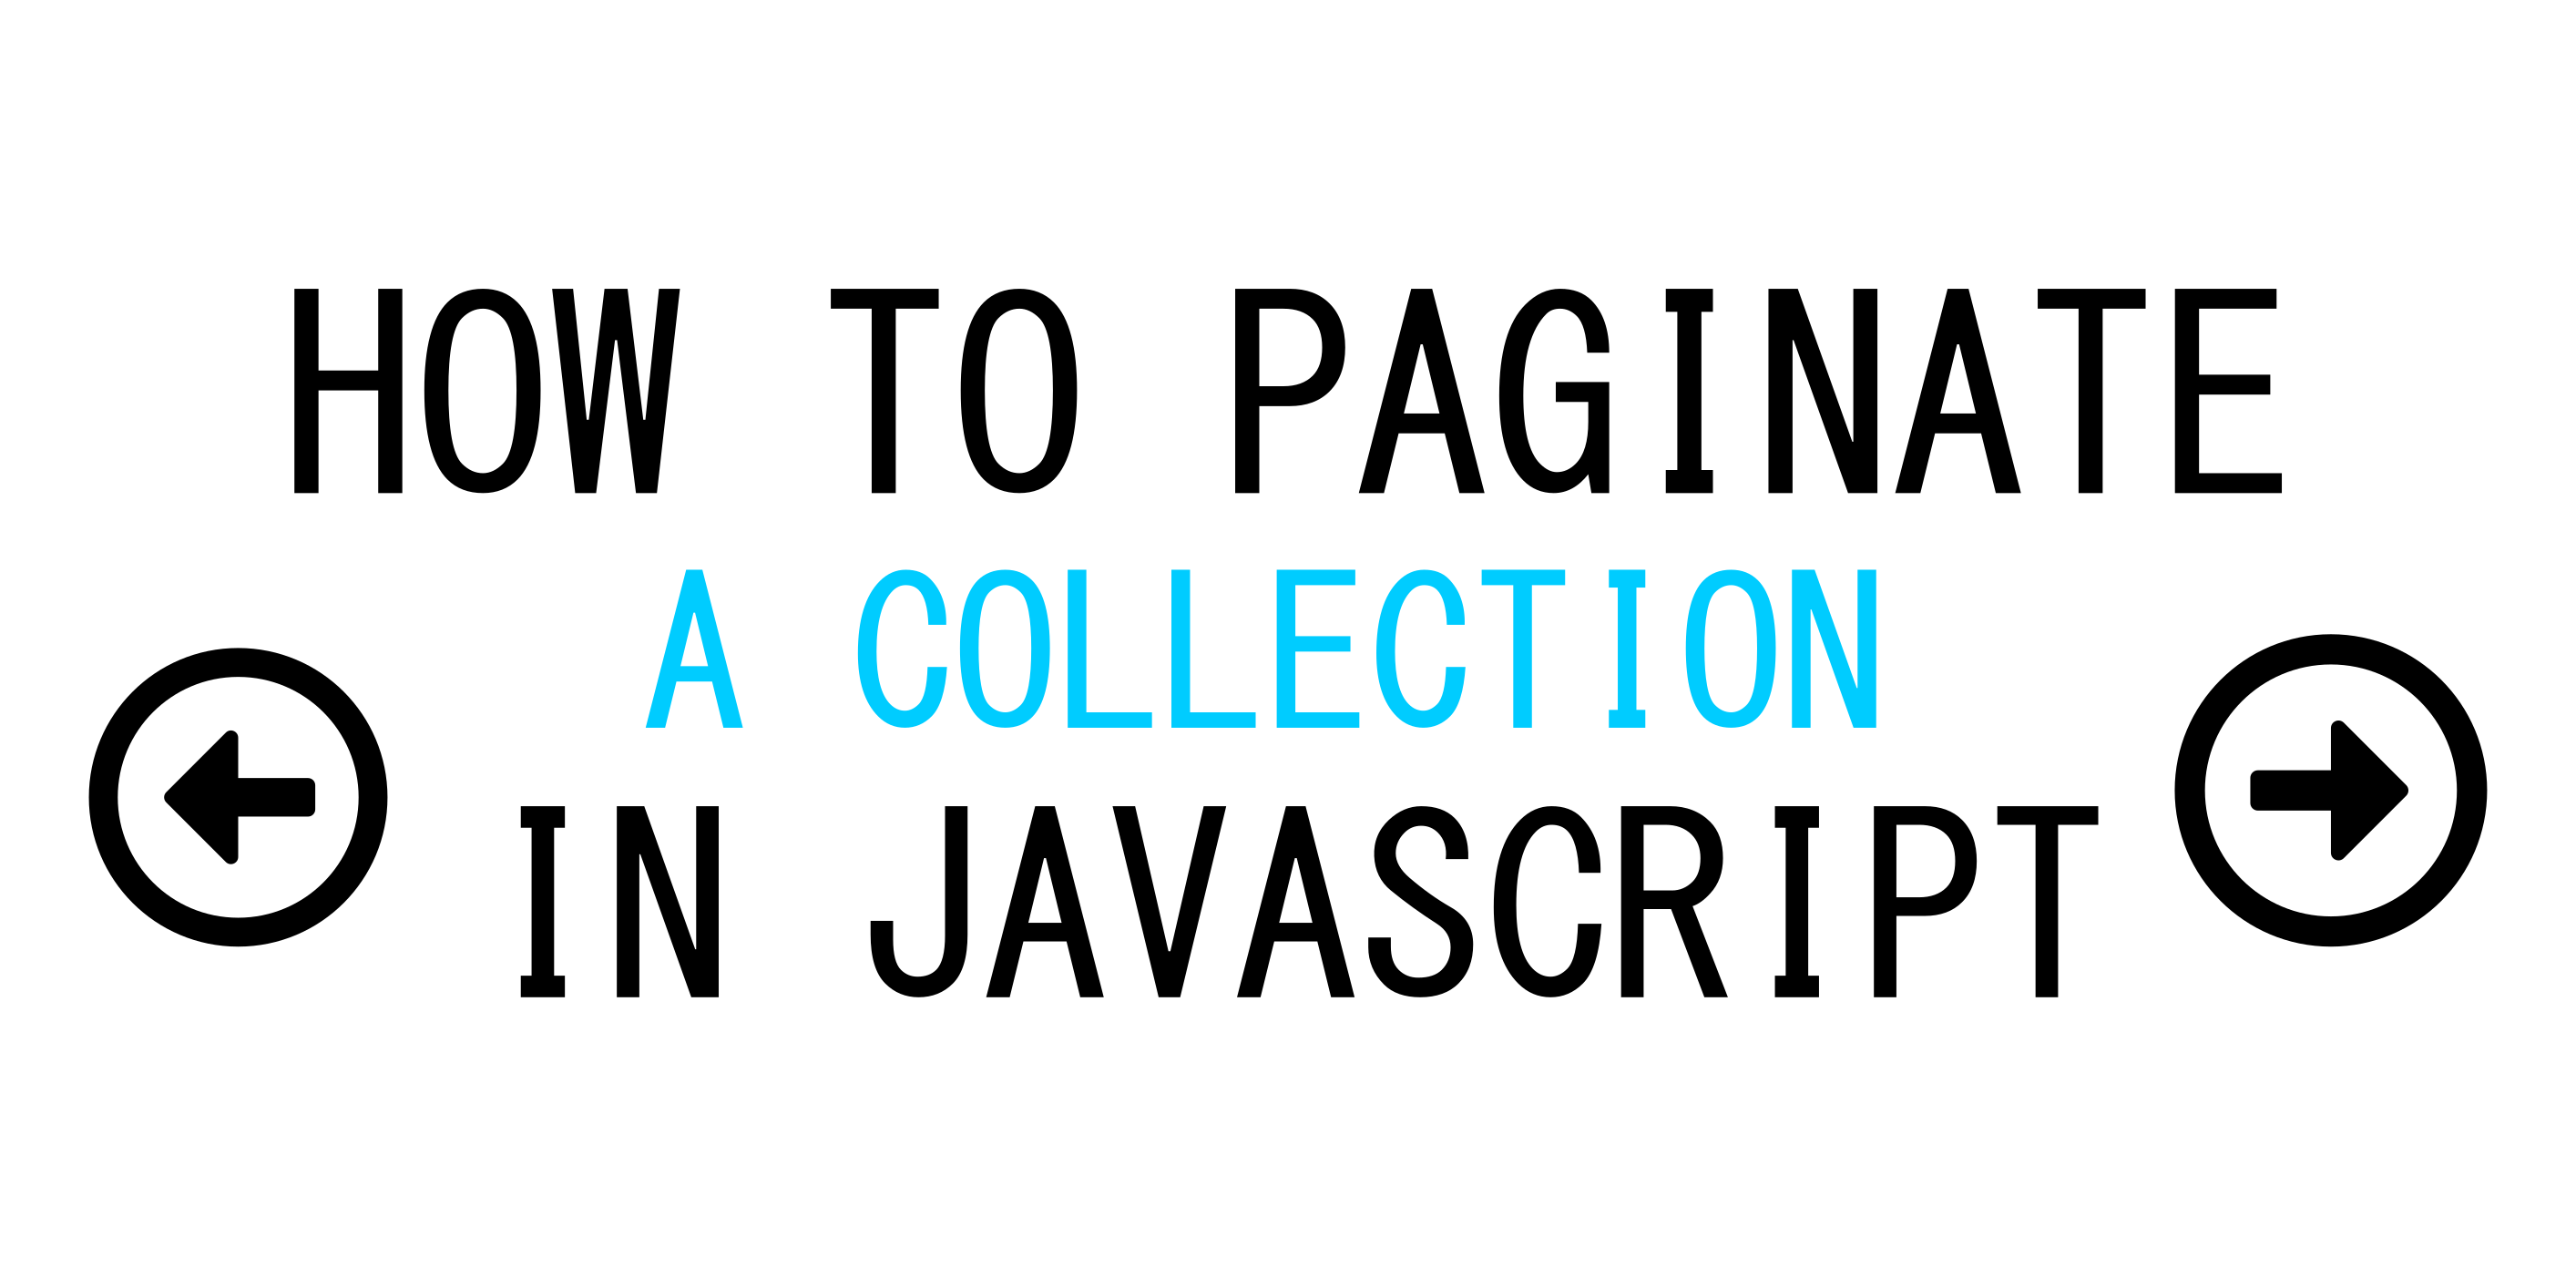 How To Paginate Through A Collection In Javascript